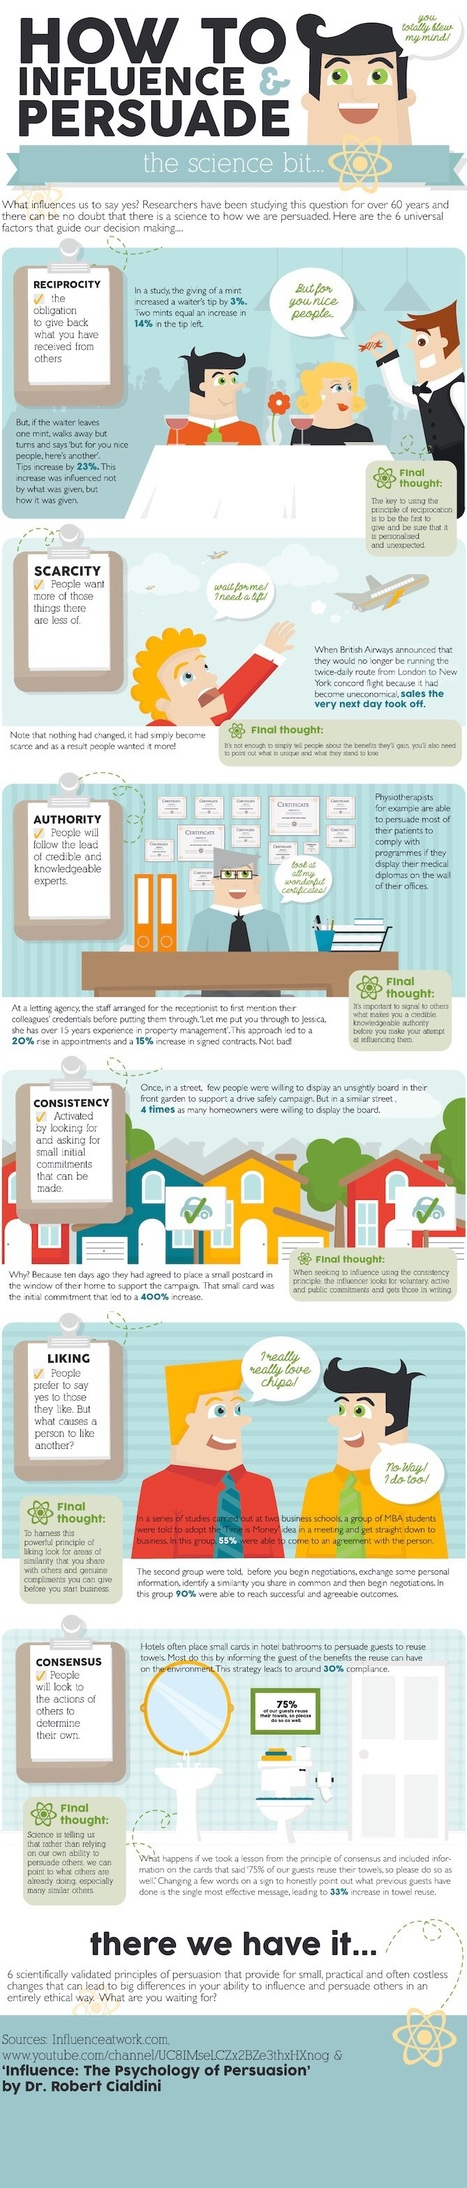 The Science of Persuasion #Infographic | Inspired By Design | Scoop.it